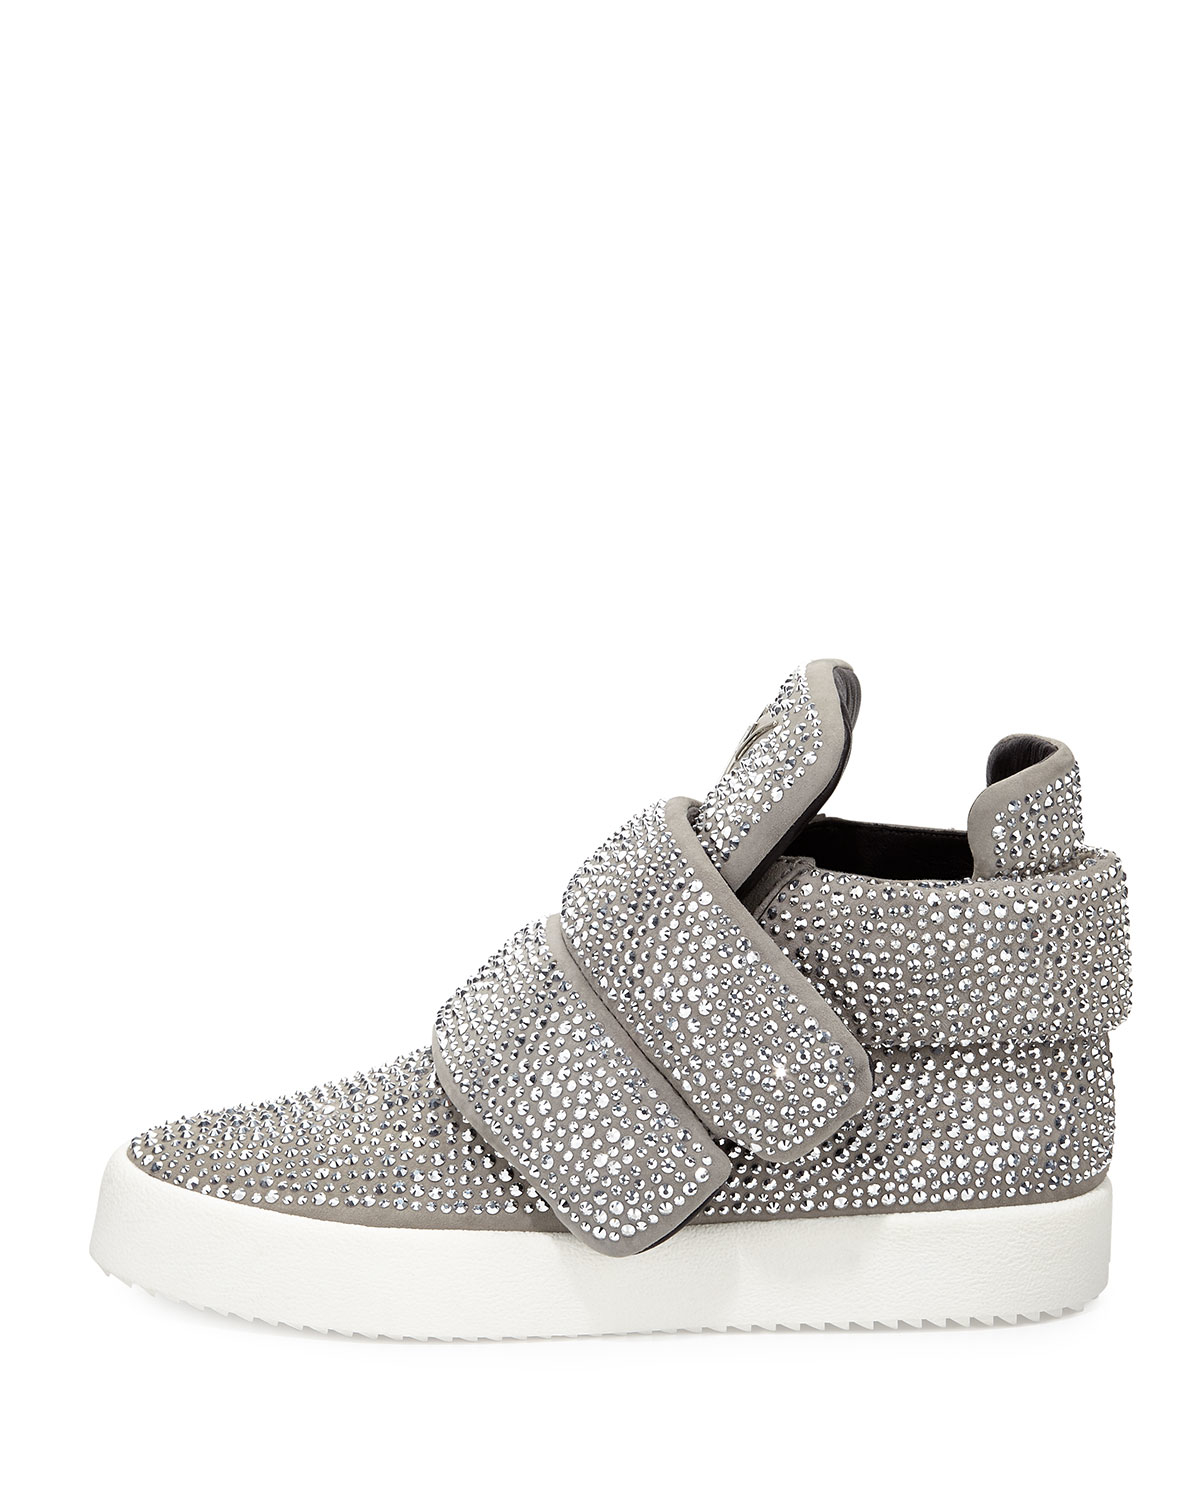 giuseppe zanotti crystal embellished high top sneakers in metallic for men lyst. Black Bedroom Furniture Sets. Home Design Ideas